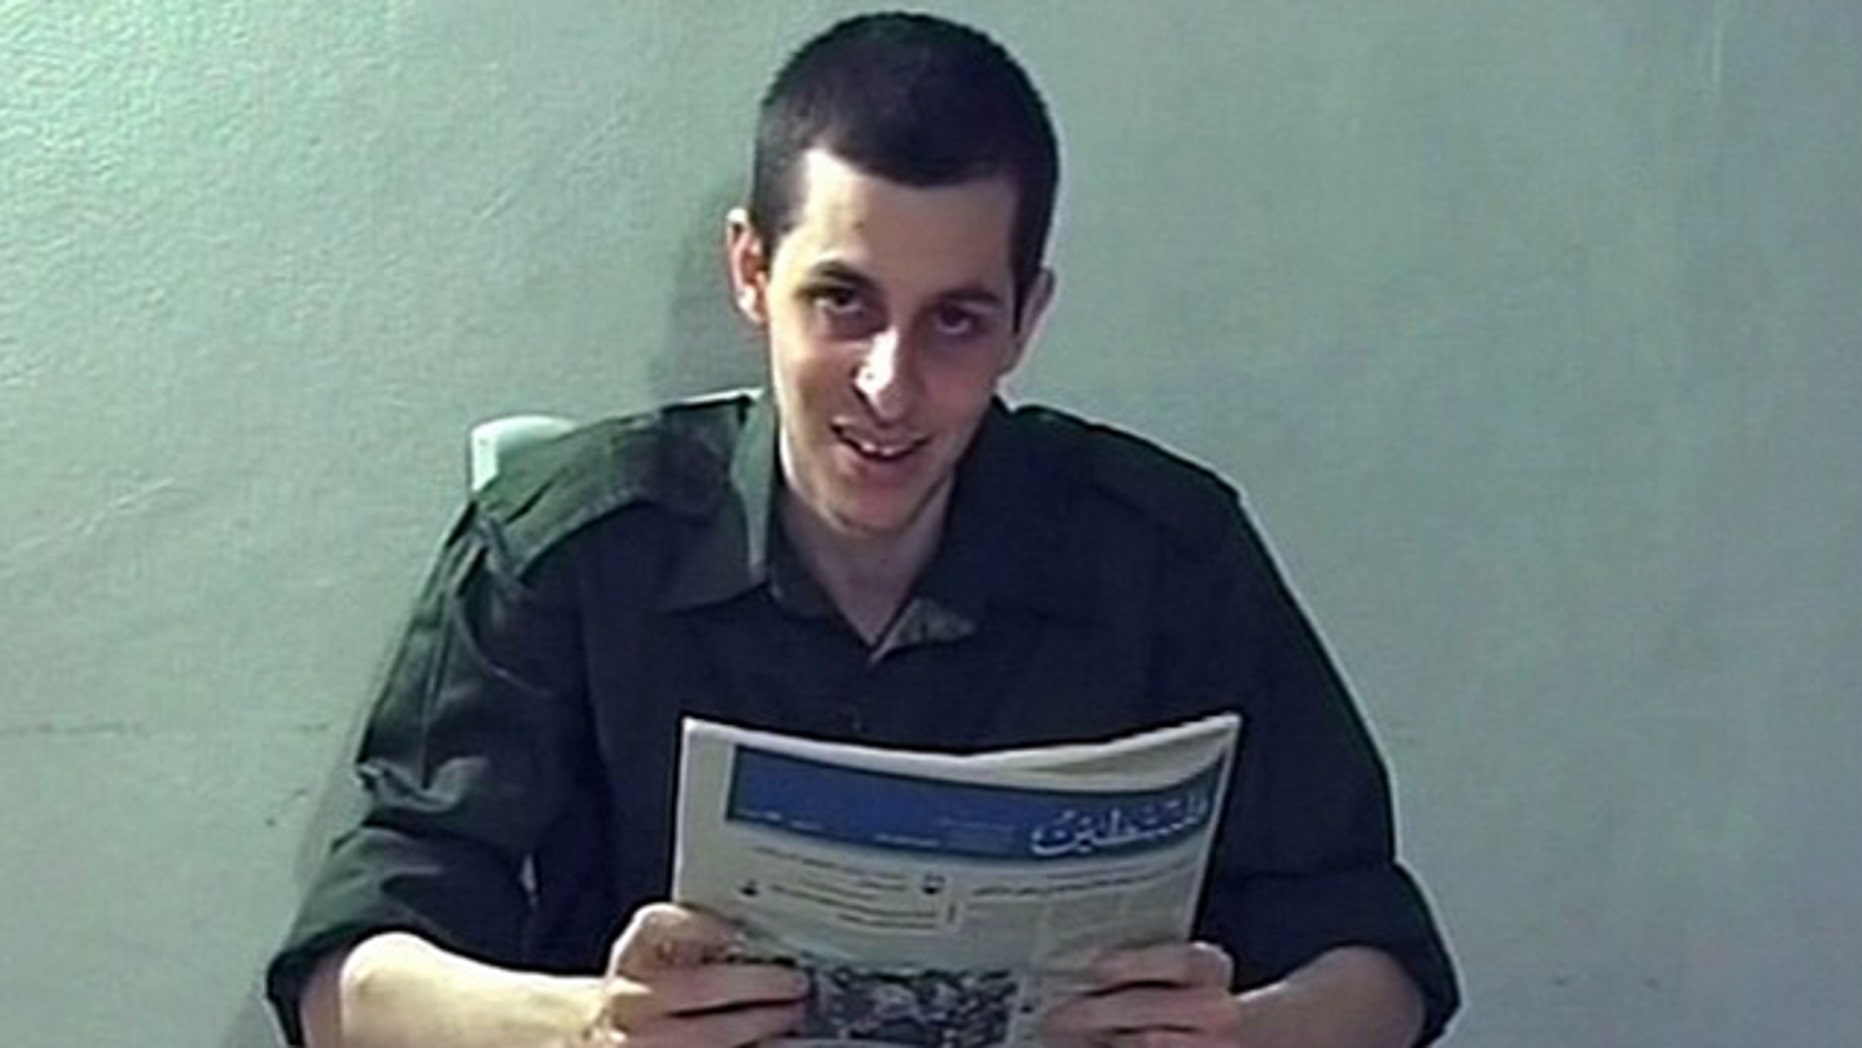 Captured Israeli soldier Gilad Shalit is seen in this file photo of a video grab released on October 2, 2009 by Israeli television. Israel has softened its terms for a prisoner swap with Hamas and the two enemies are nearing a deal to exchange hundreds of Palestinian inmates for Shalit, an Israeli soldier held in the Gaza Strip, officials said on November 23, 2009.  REUTERS/Handout/Files (POLITICS CONFLICT) FOR EDITORIAL USE ONLY. NOT FOR SALE FOR MARKETING OR ADVERTISING CAMPAIGNS